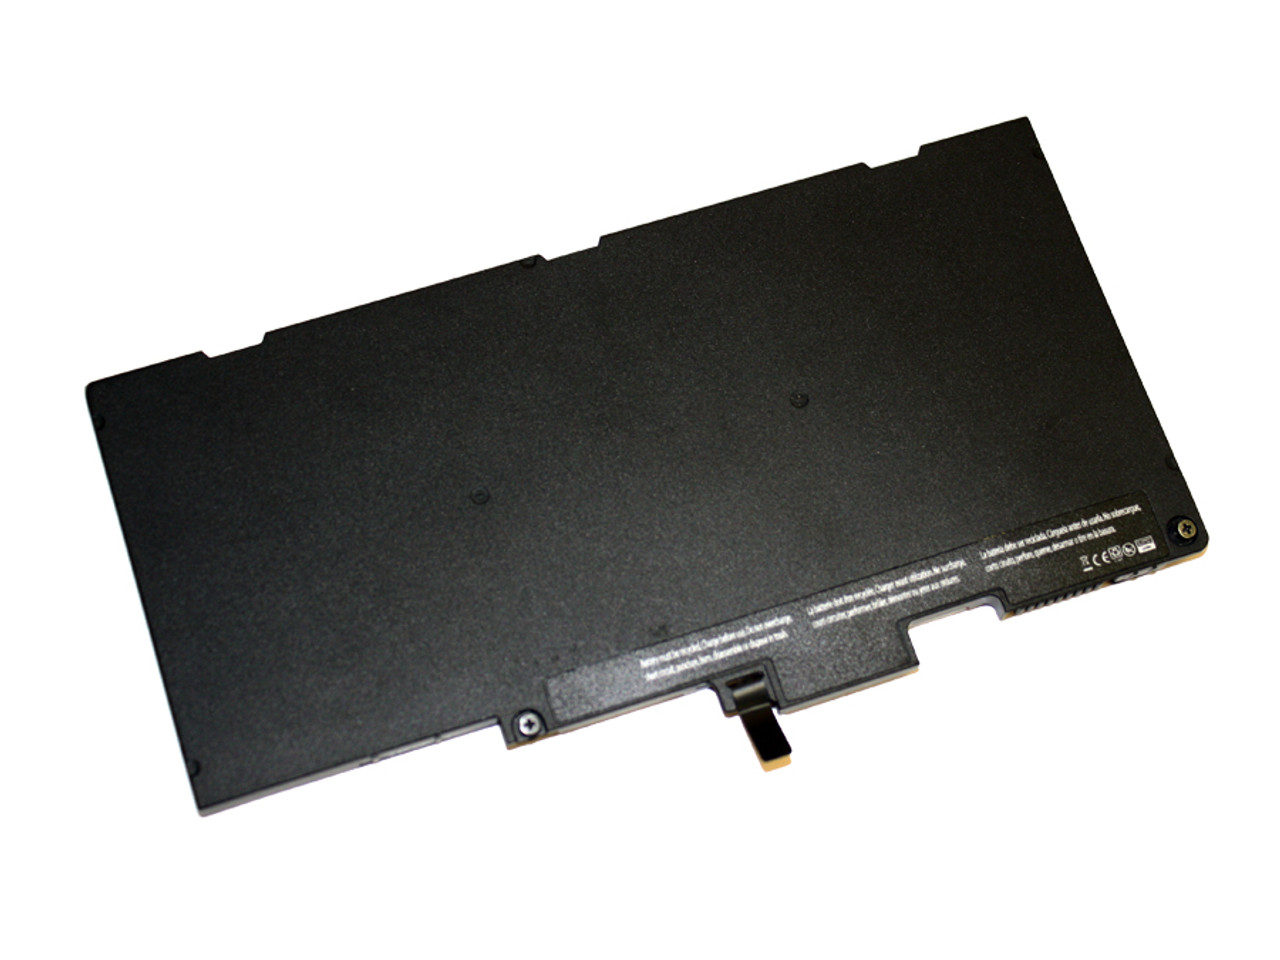 Replacement Battery for HP - COMPAQ HP ELITEBOOK 745 G3, ELITEBOOK 755 G3, ELITEBOOK 840 G3